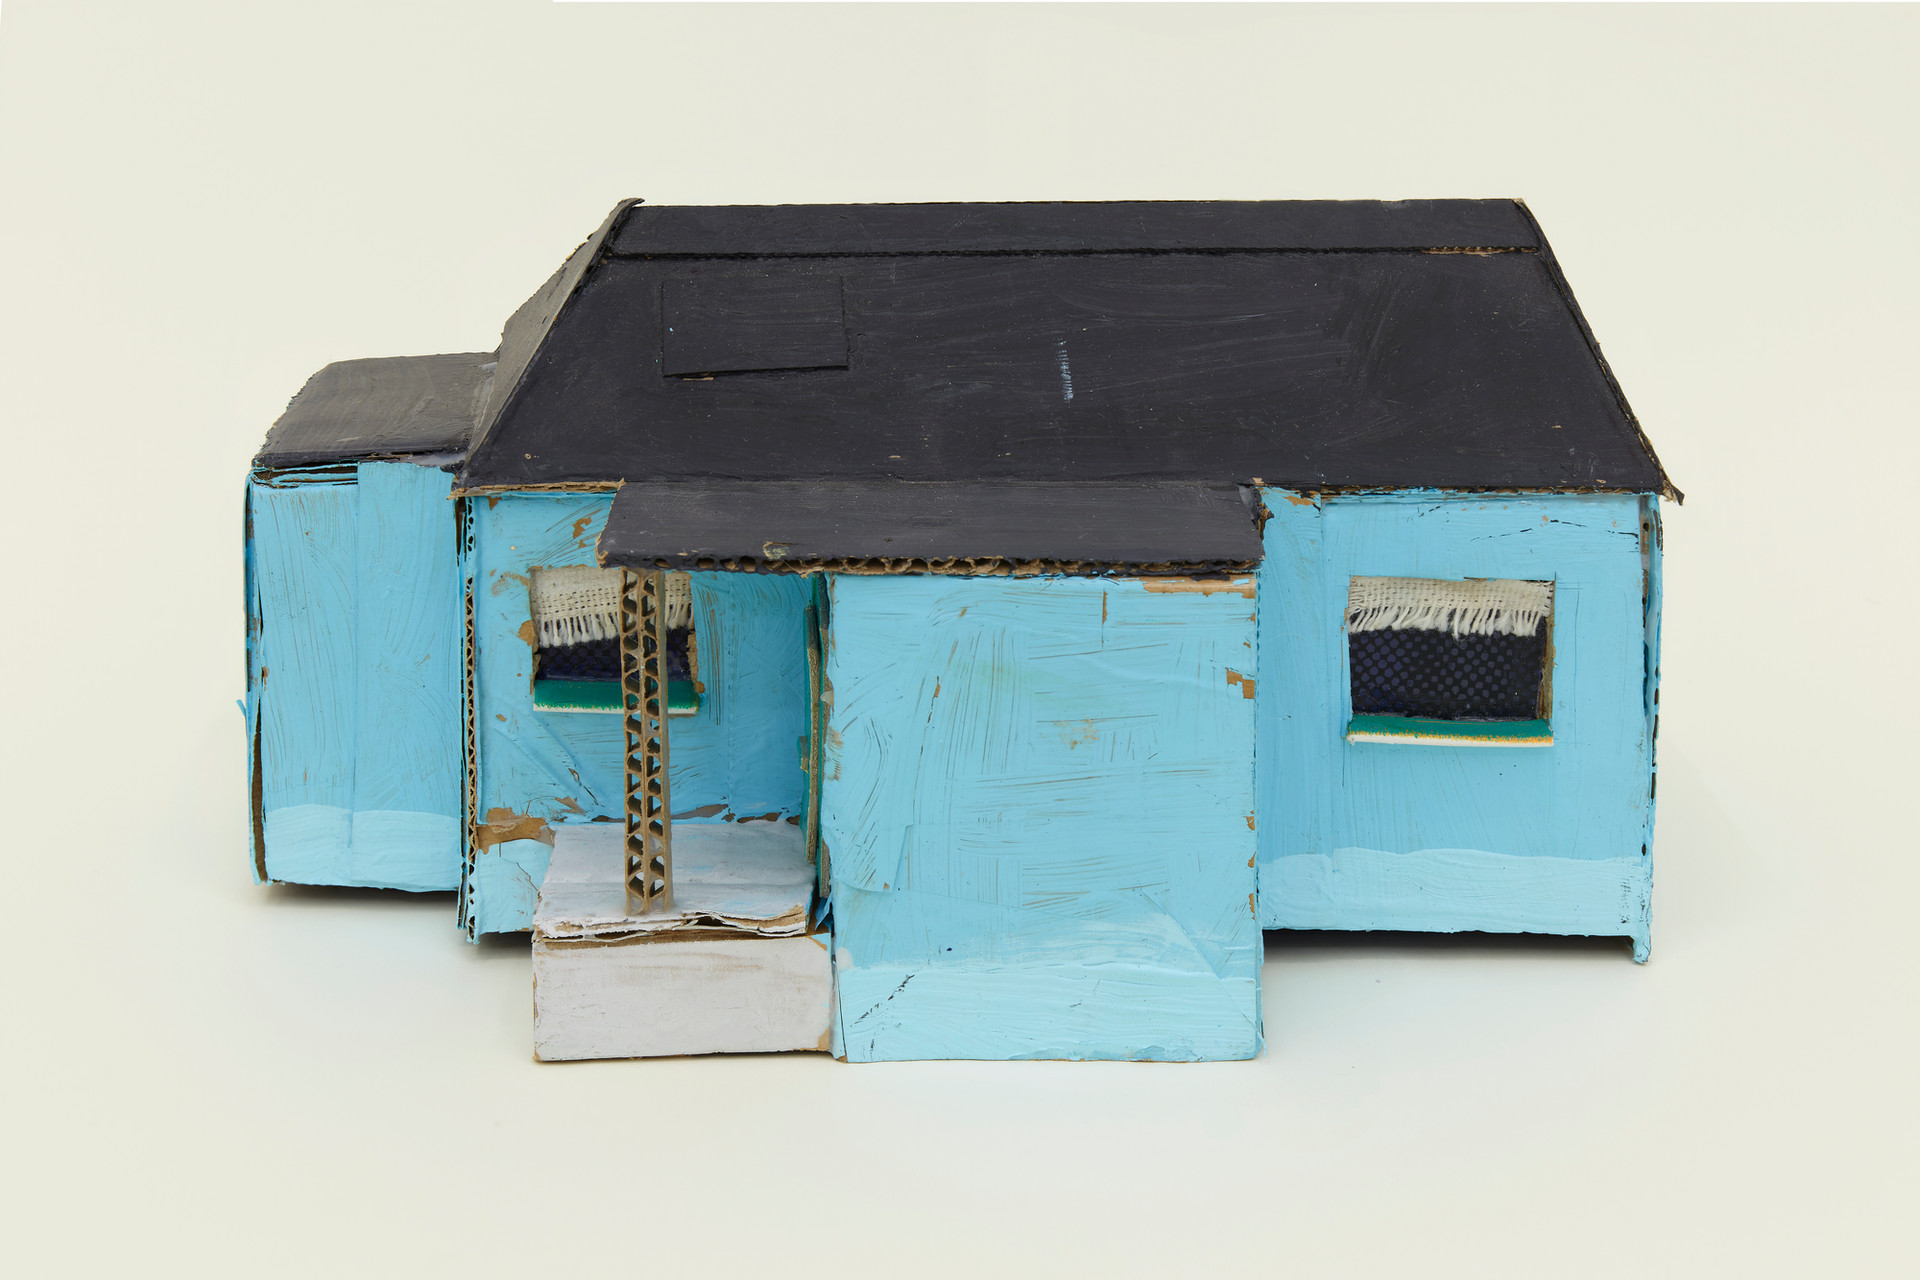 Leo Gabin  Untitled (Real Estate), 2017 – 2019  Acrylic on cardboard  9 x 5 x 5 1/2 inches